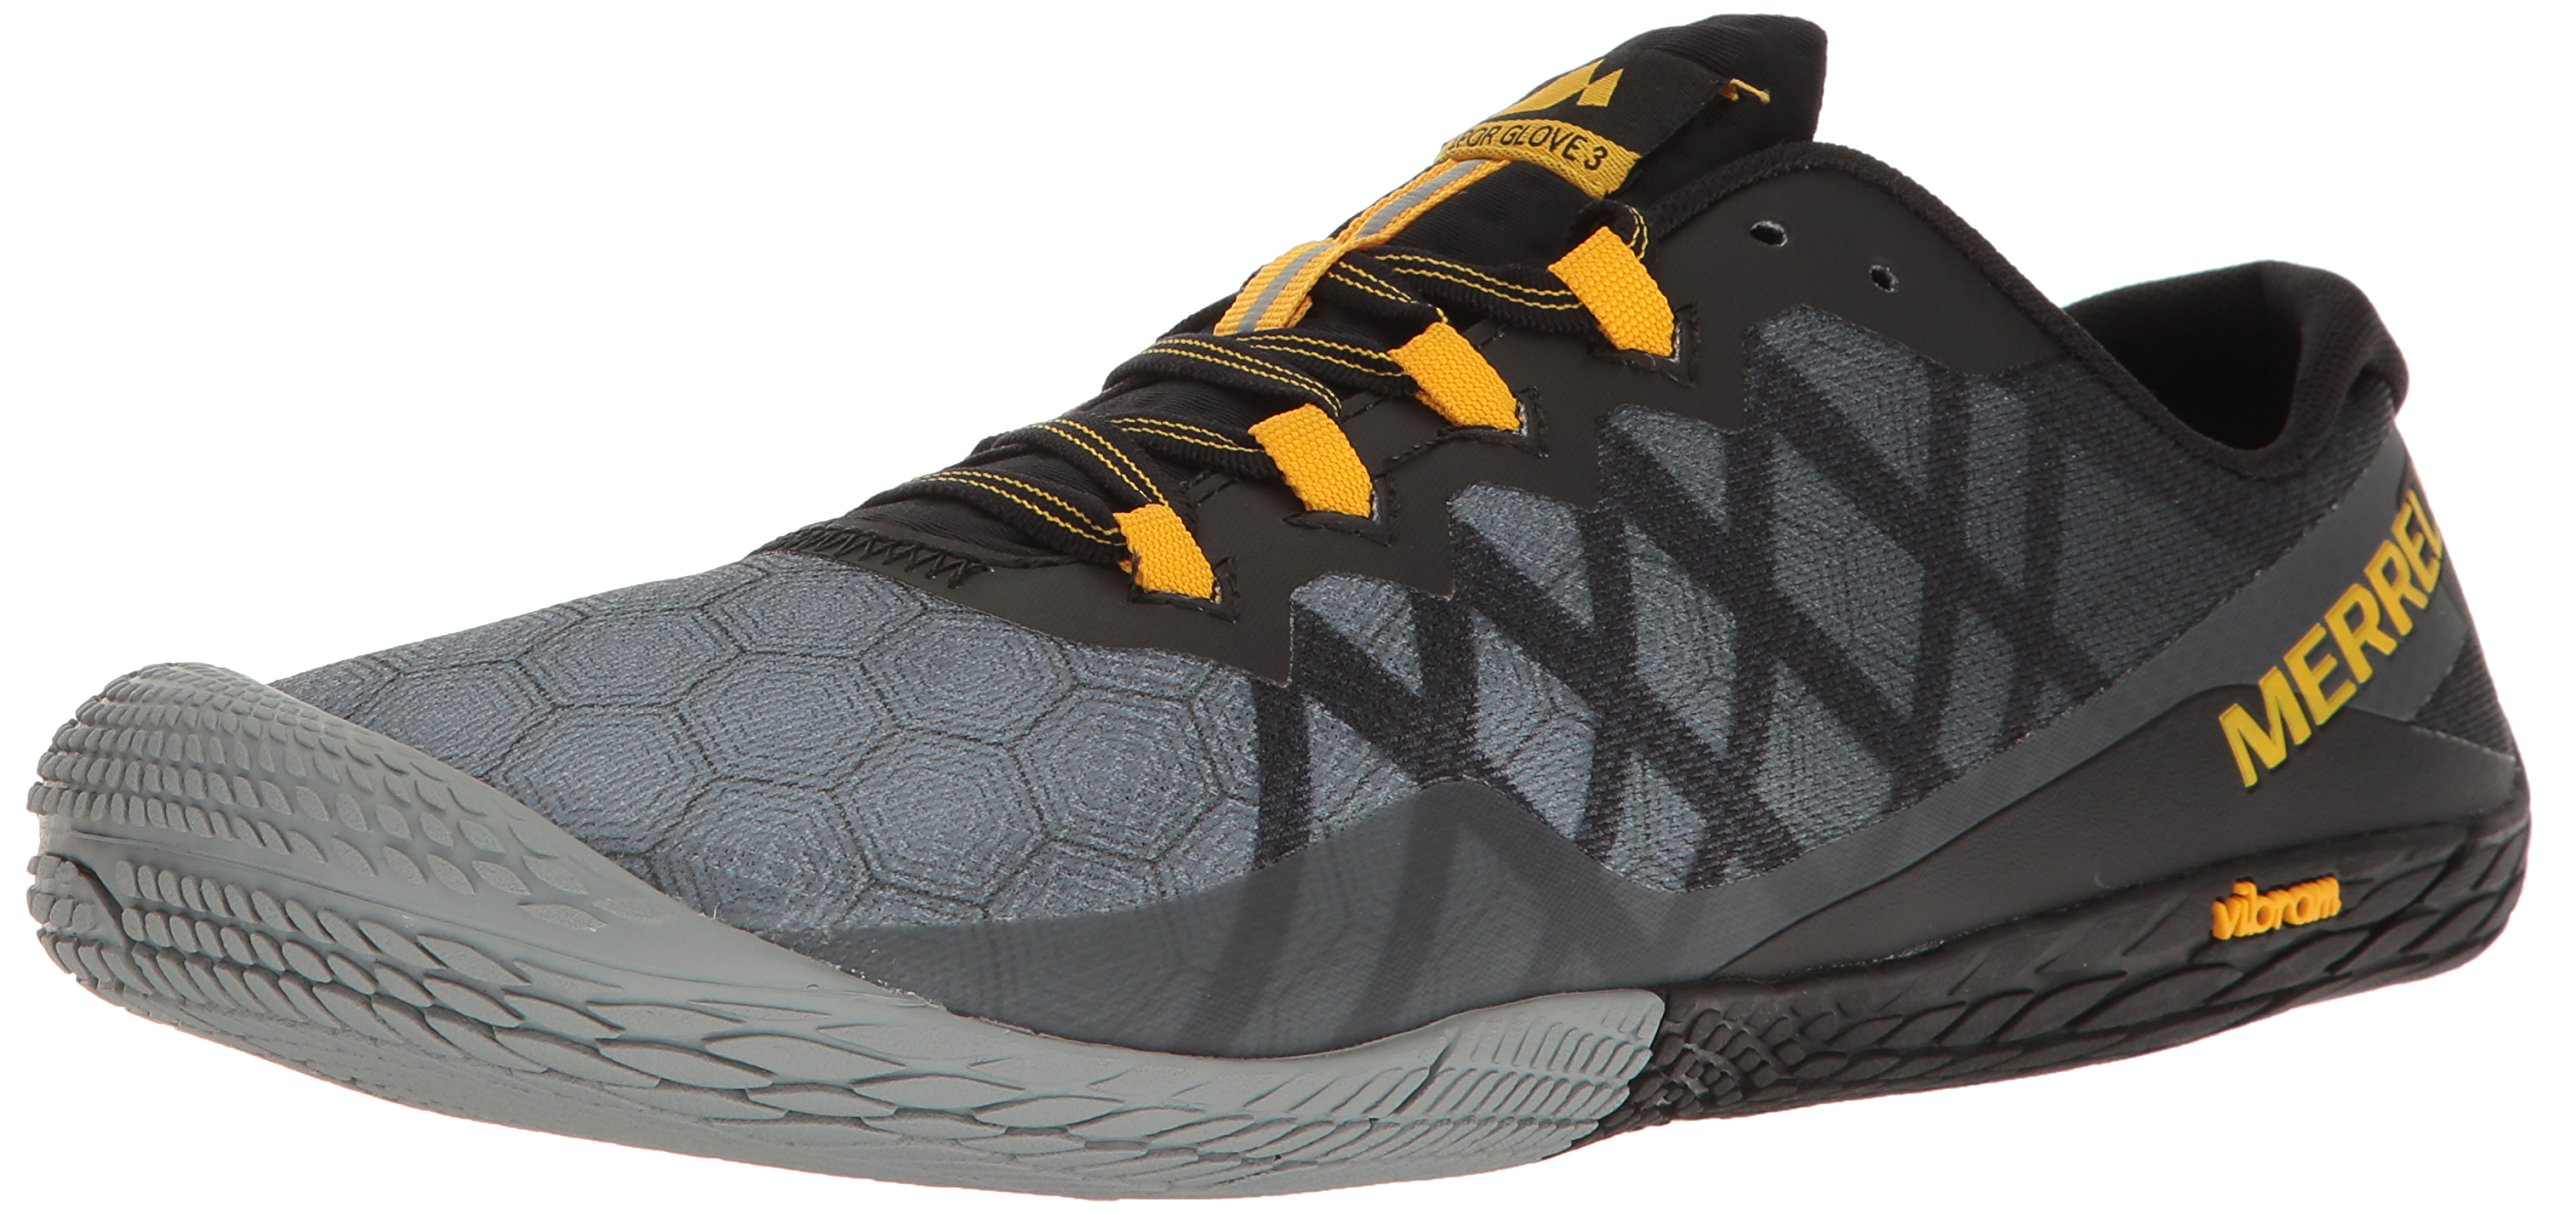 Merrell Men's Vapor Glove 3 Trail Runner, Dark Grey, 10 M US by Merrell